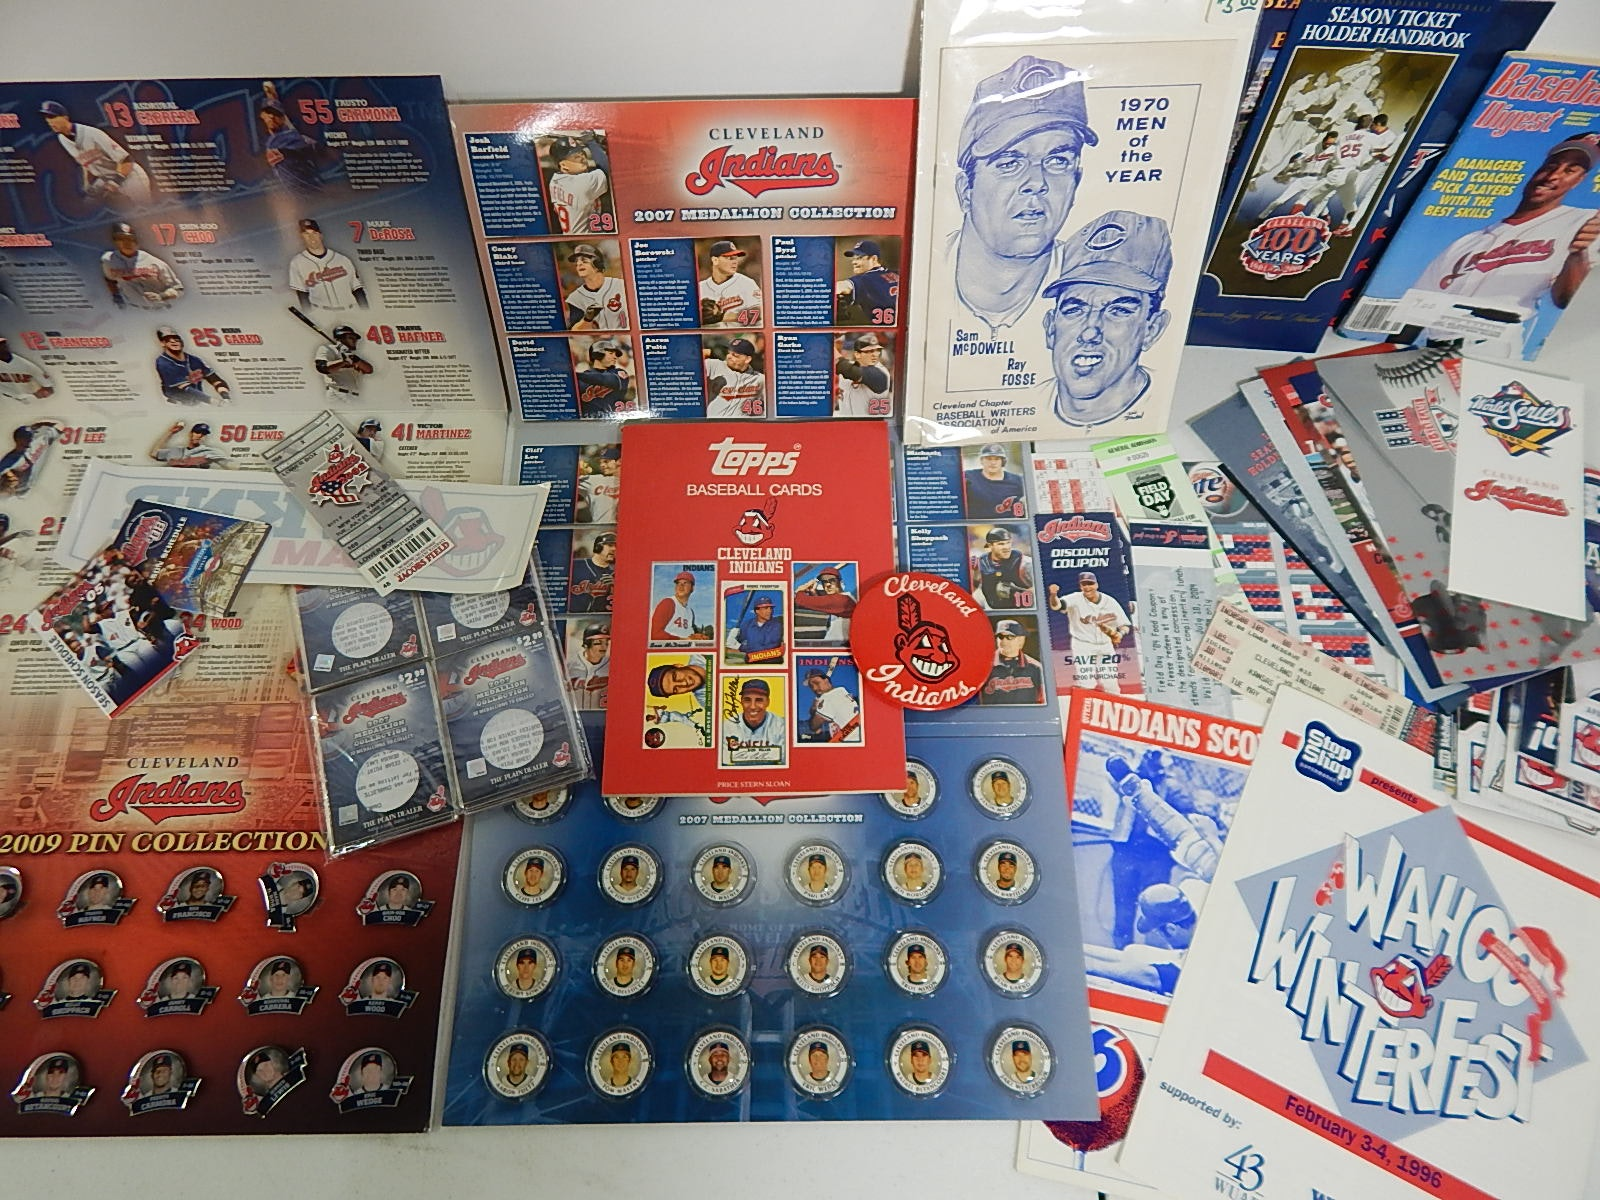 Cleveland Indians Collectibles with 1970 Score Card, Pin Set, Medallion Set,More